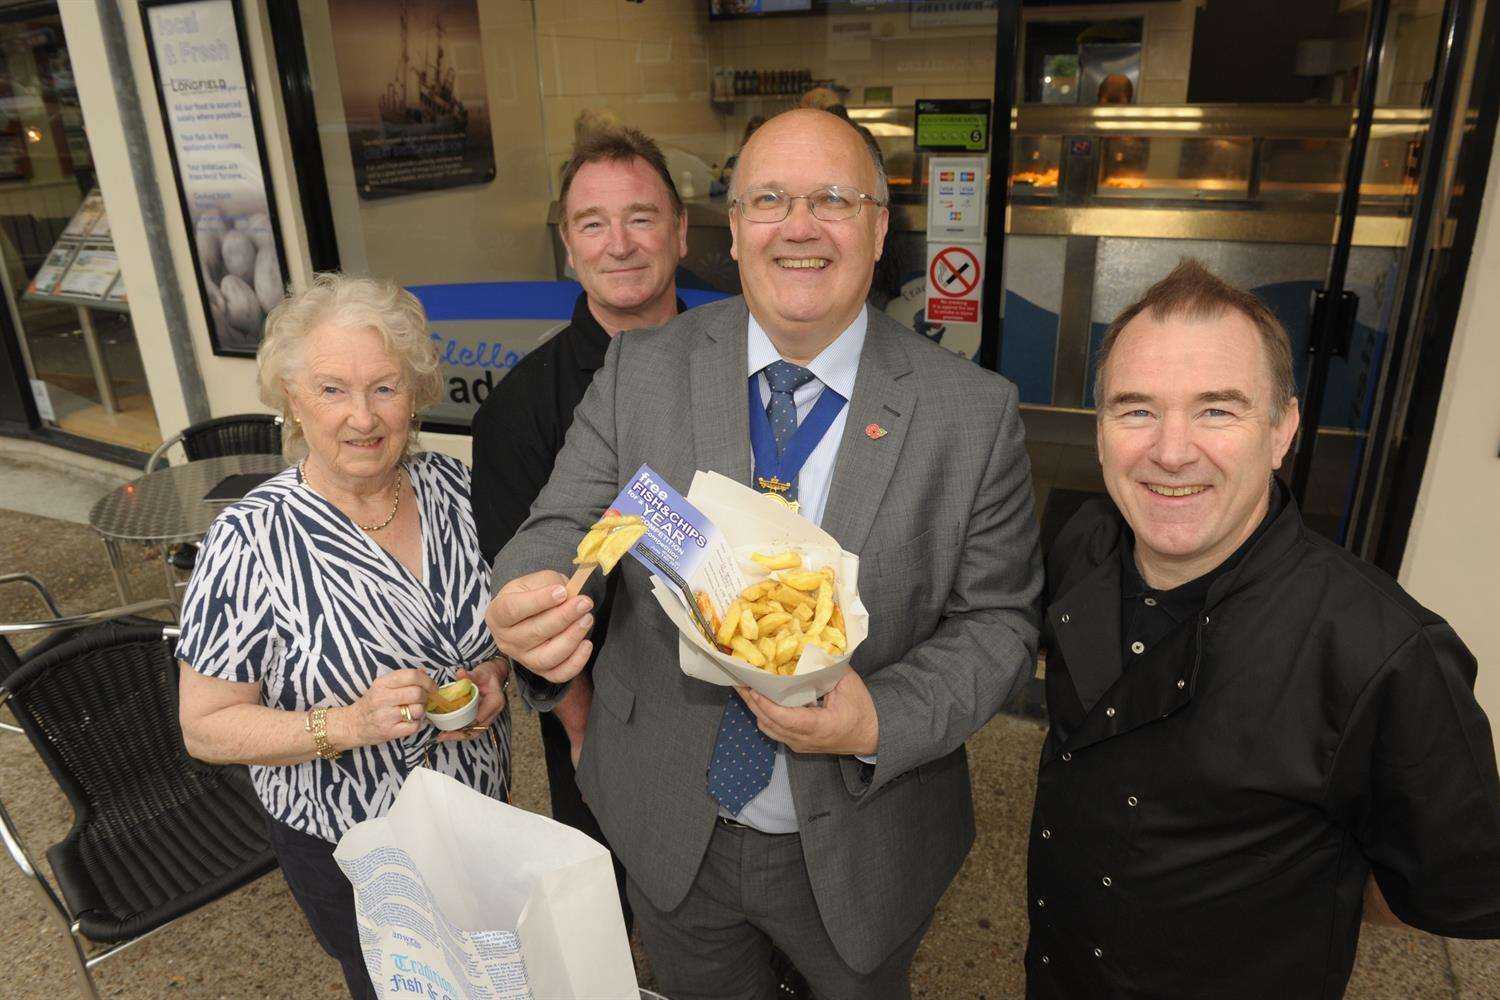 Picking the winner of Fish & Chips for a year, Dorreen McClelland, David and Paul McClelland and Jeremy Kite.